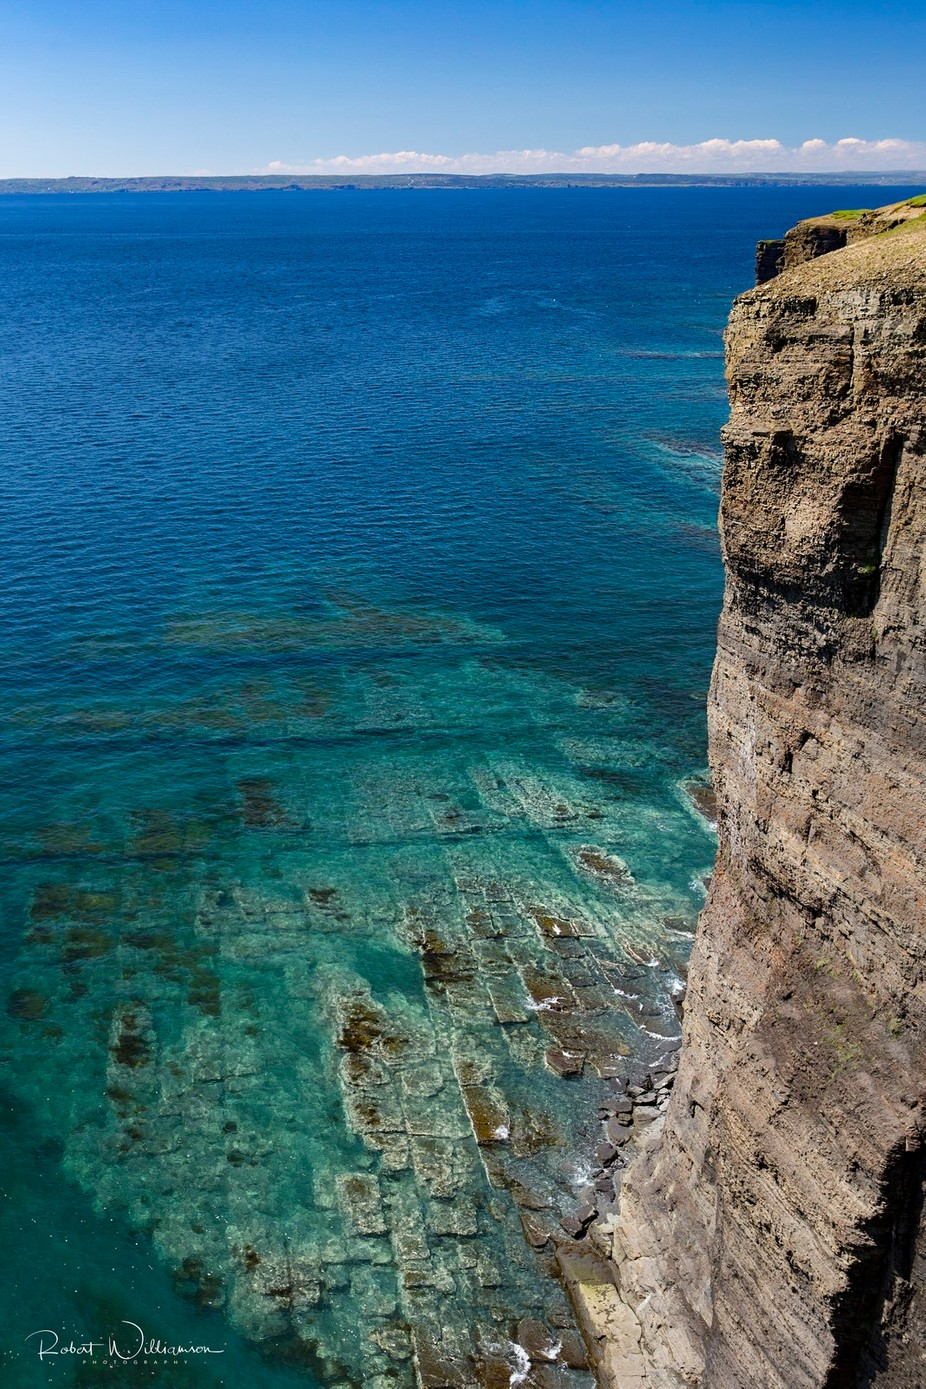 Bell Island by robwill236 - Spectacular Cliffs Photo Contest